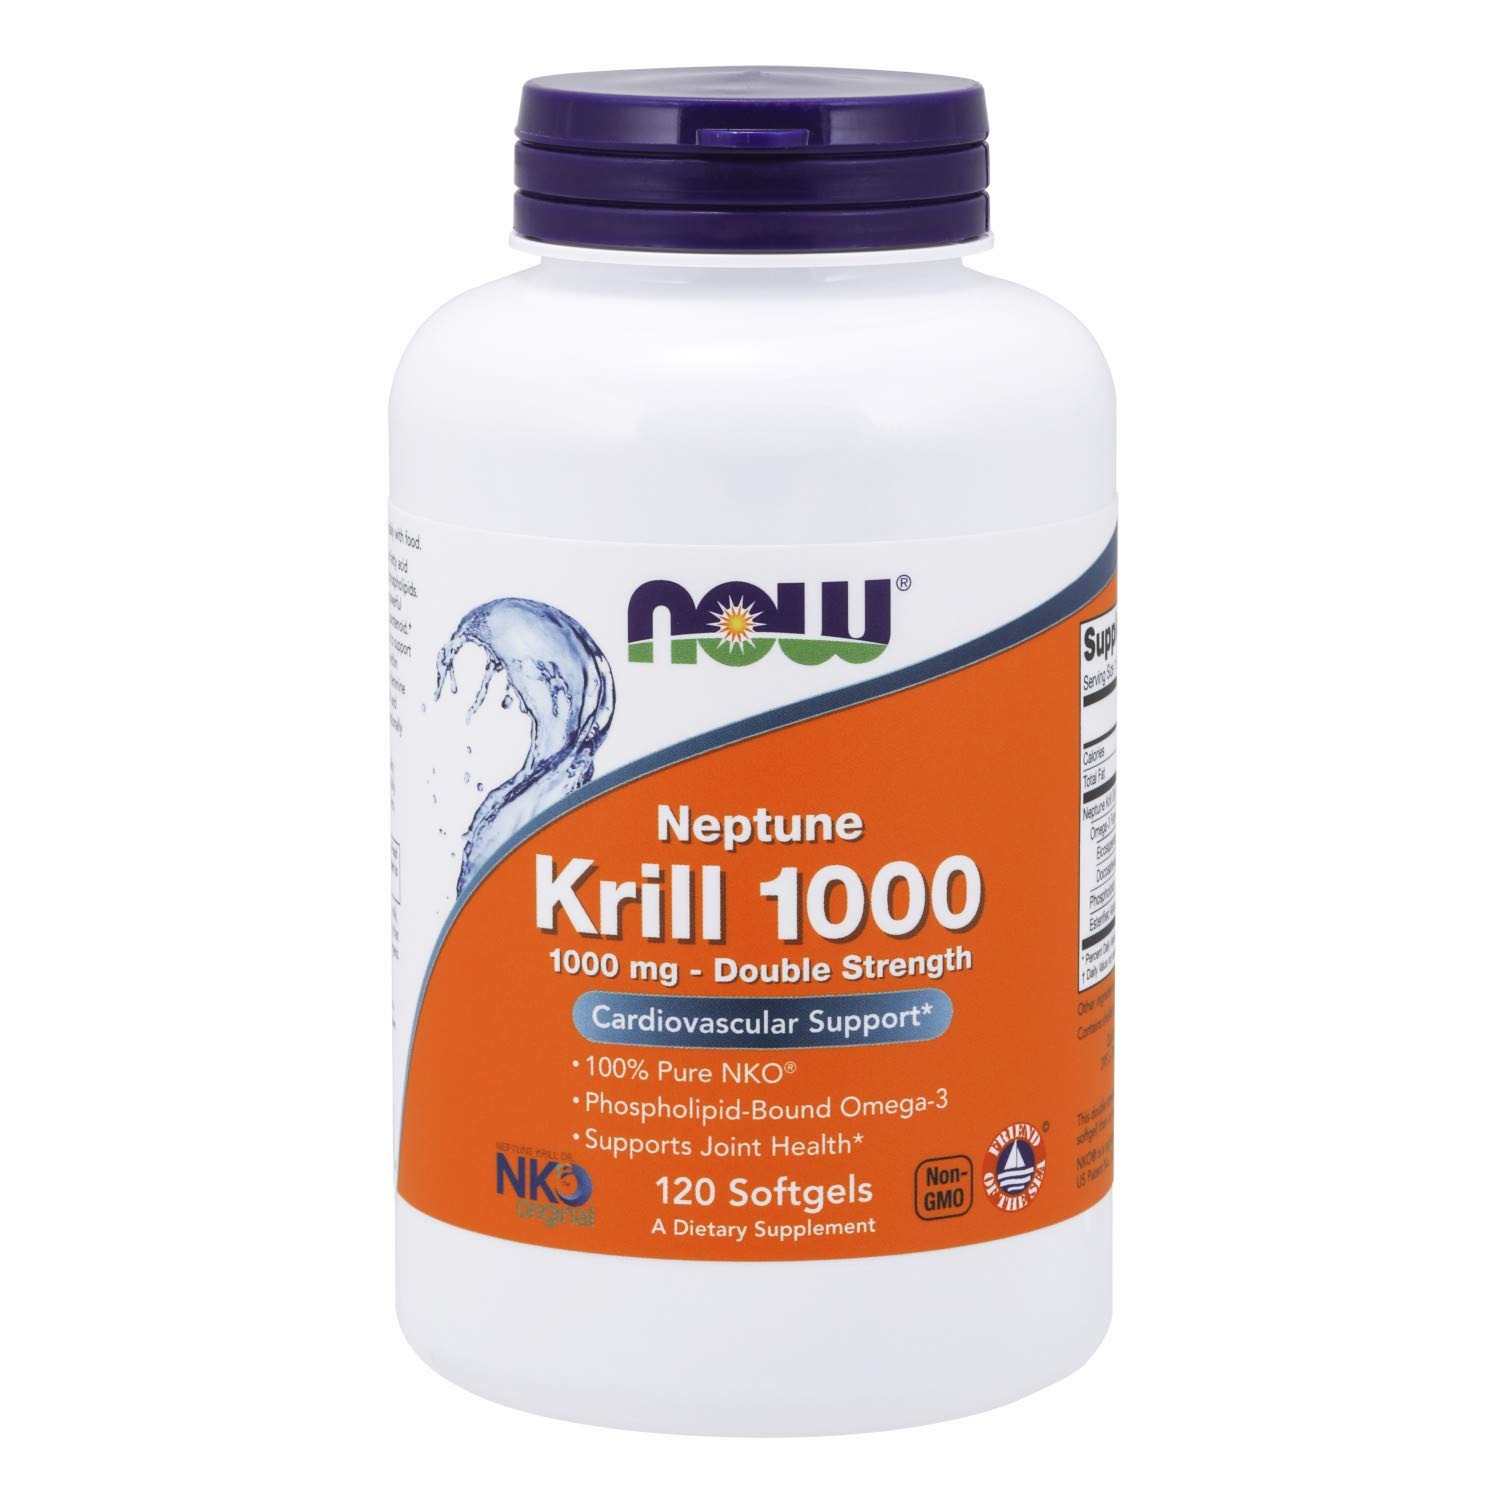 Now Supplements, Neptune Krill, Double Strength 1000 mg, Phospholipid-Bound Omega-3, 120 Softgels by NOW Foods